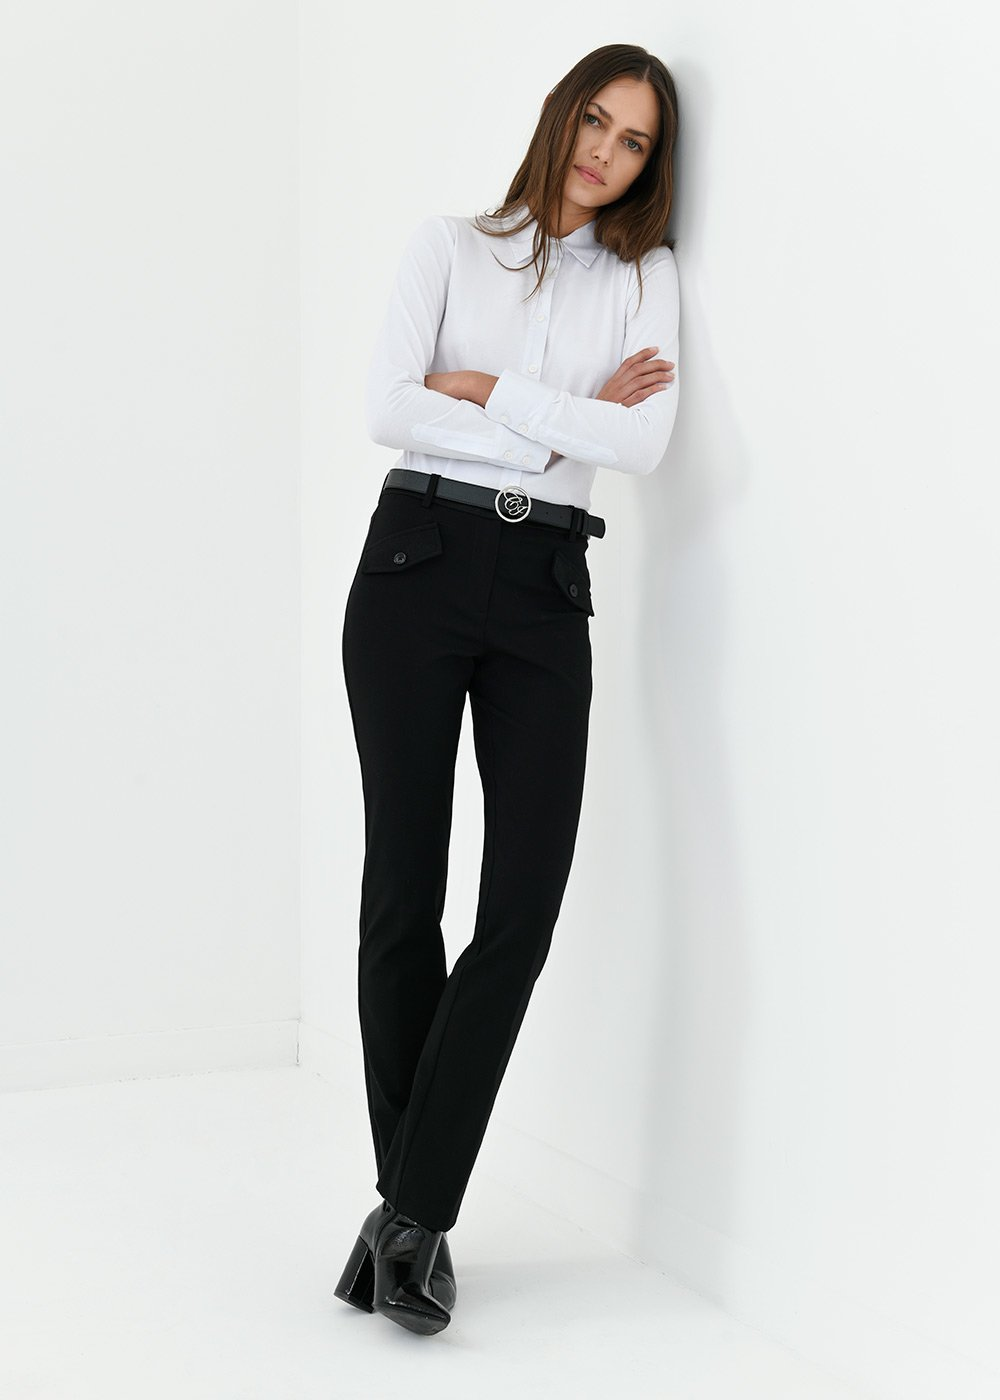 Pantalone Carrie in tessuto milano - Black - Donna